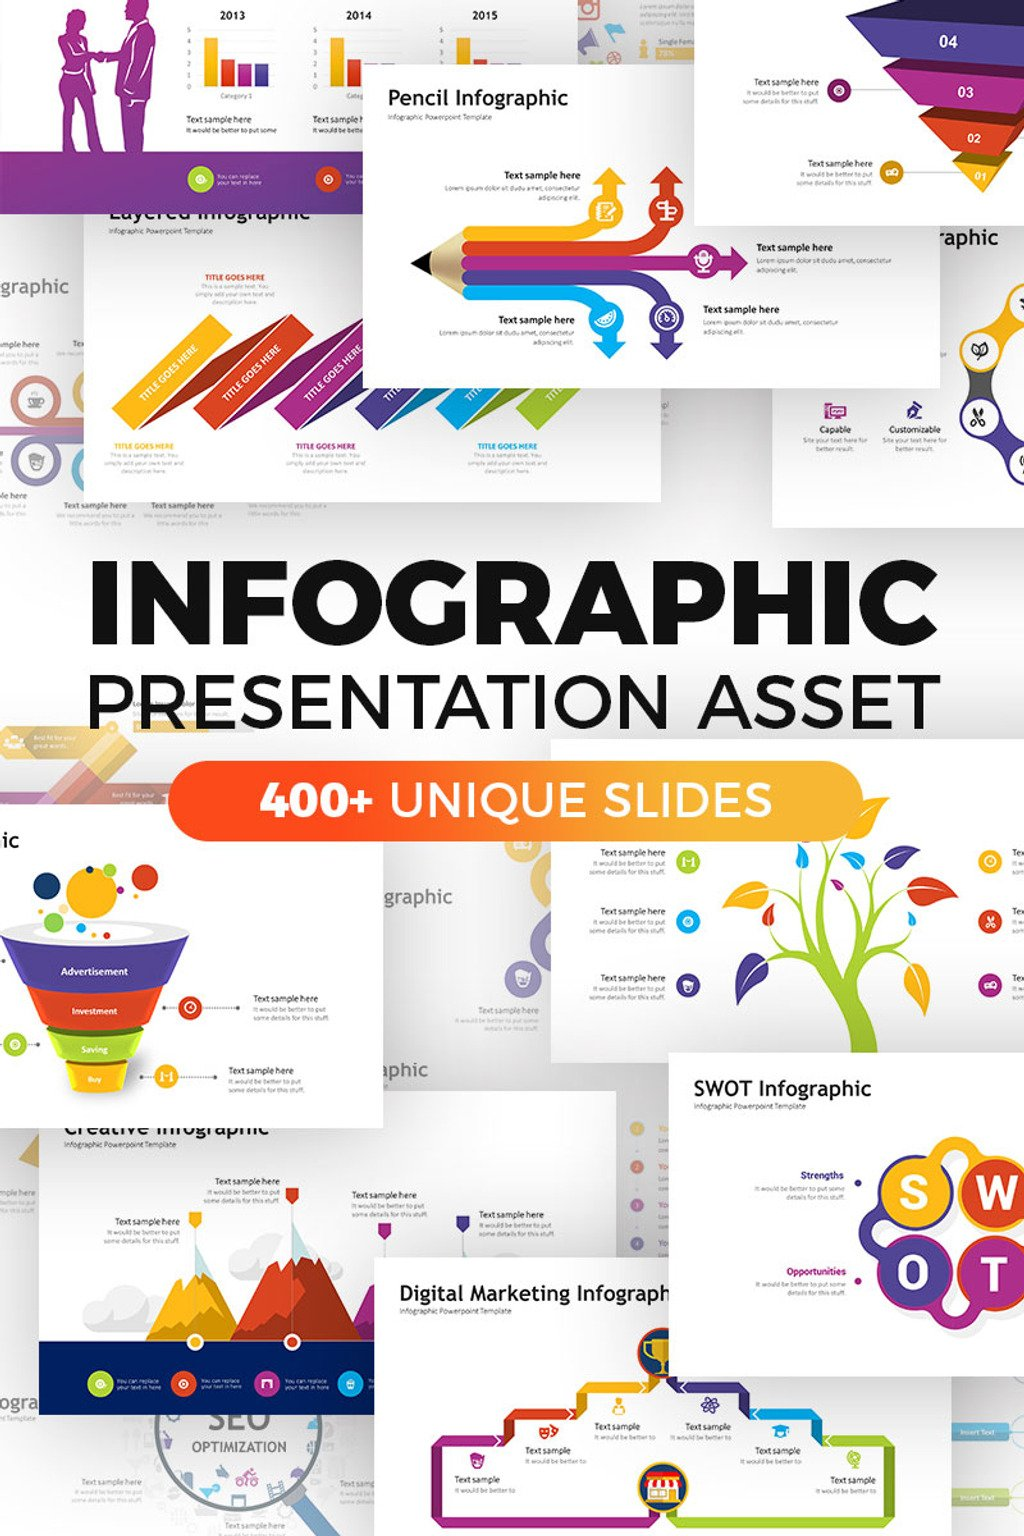 838 powerpoint templates ppt templates powerpoint themes infographic pack presentation asset powerpoint template toneelgroepblik Image collections